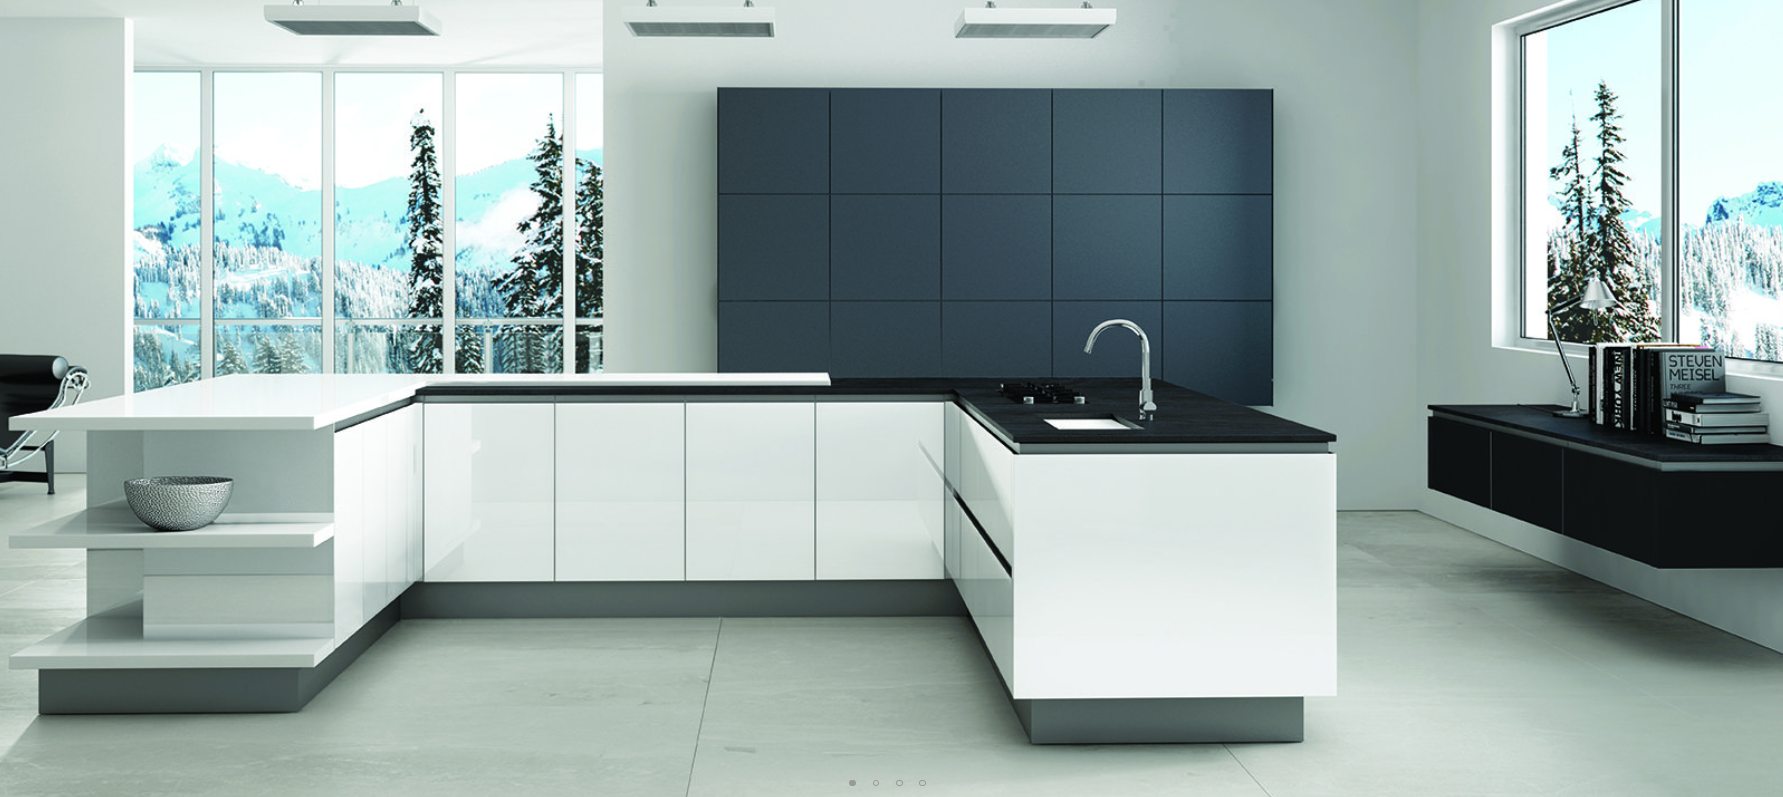 Deseo Kitchens | The Souths leading Deseo retailer | Meridien Interiors